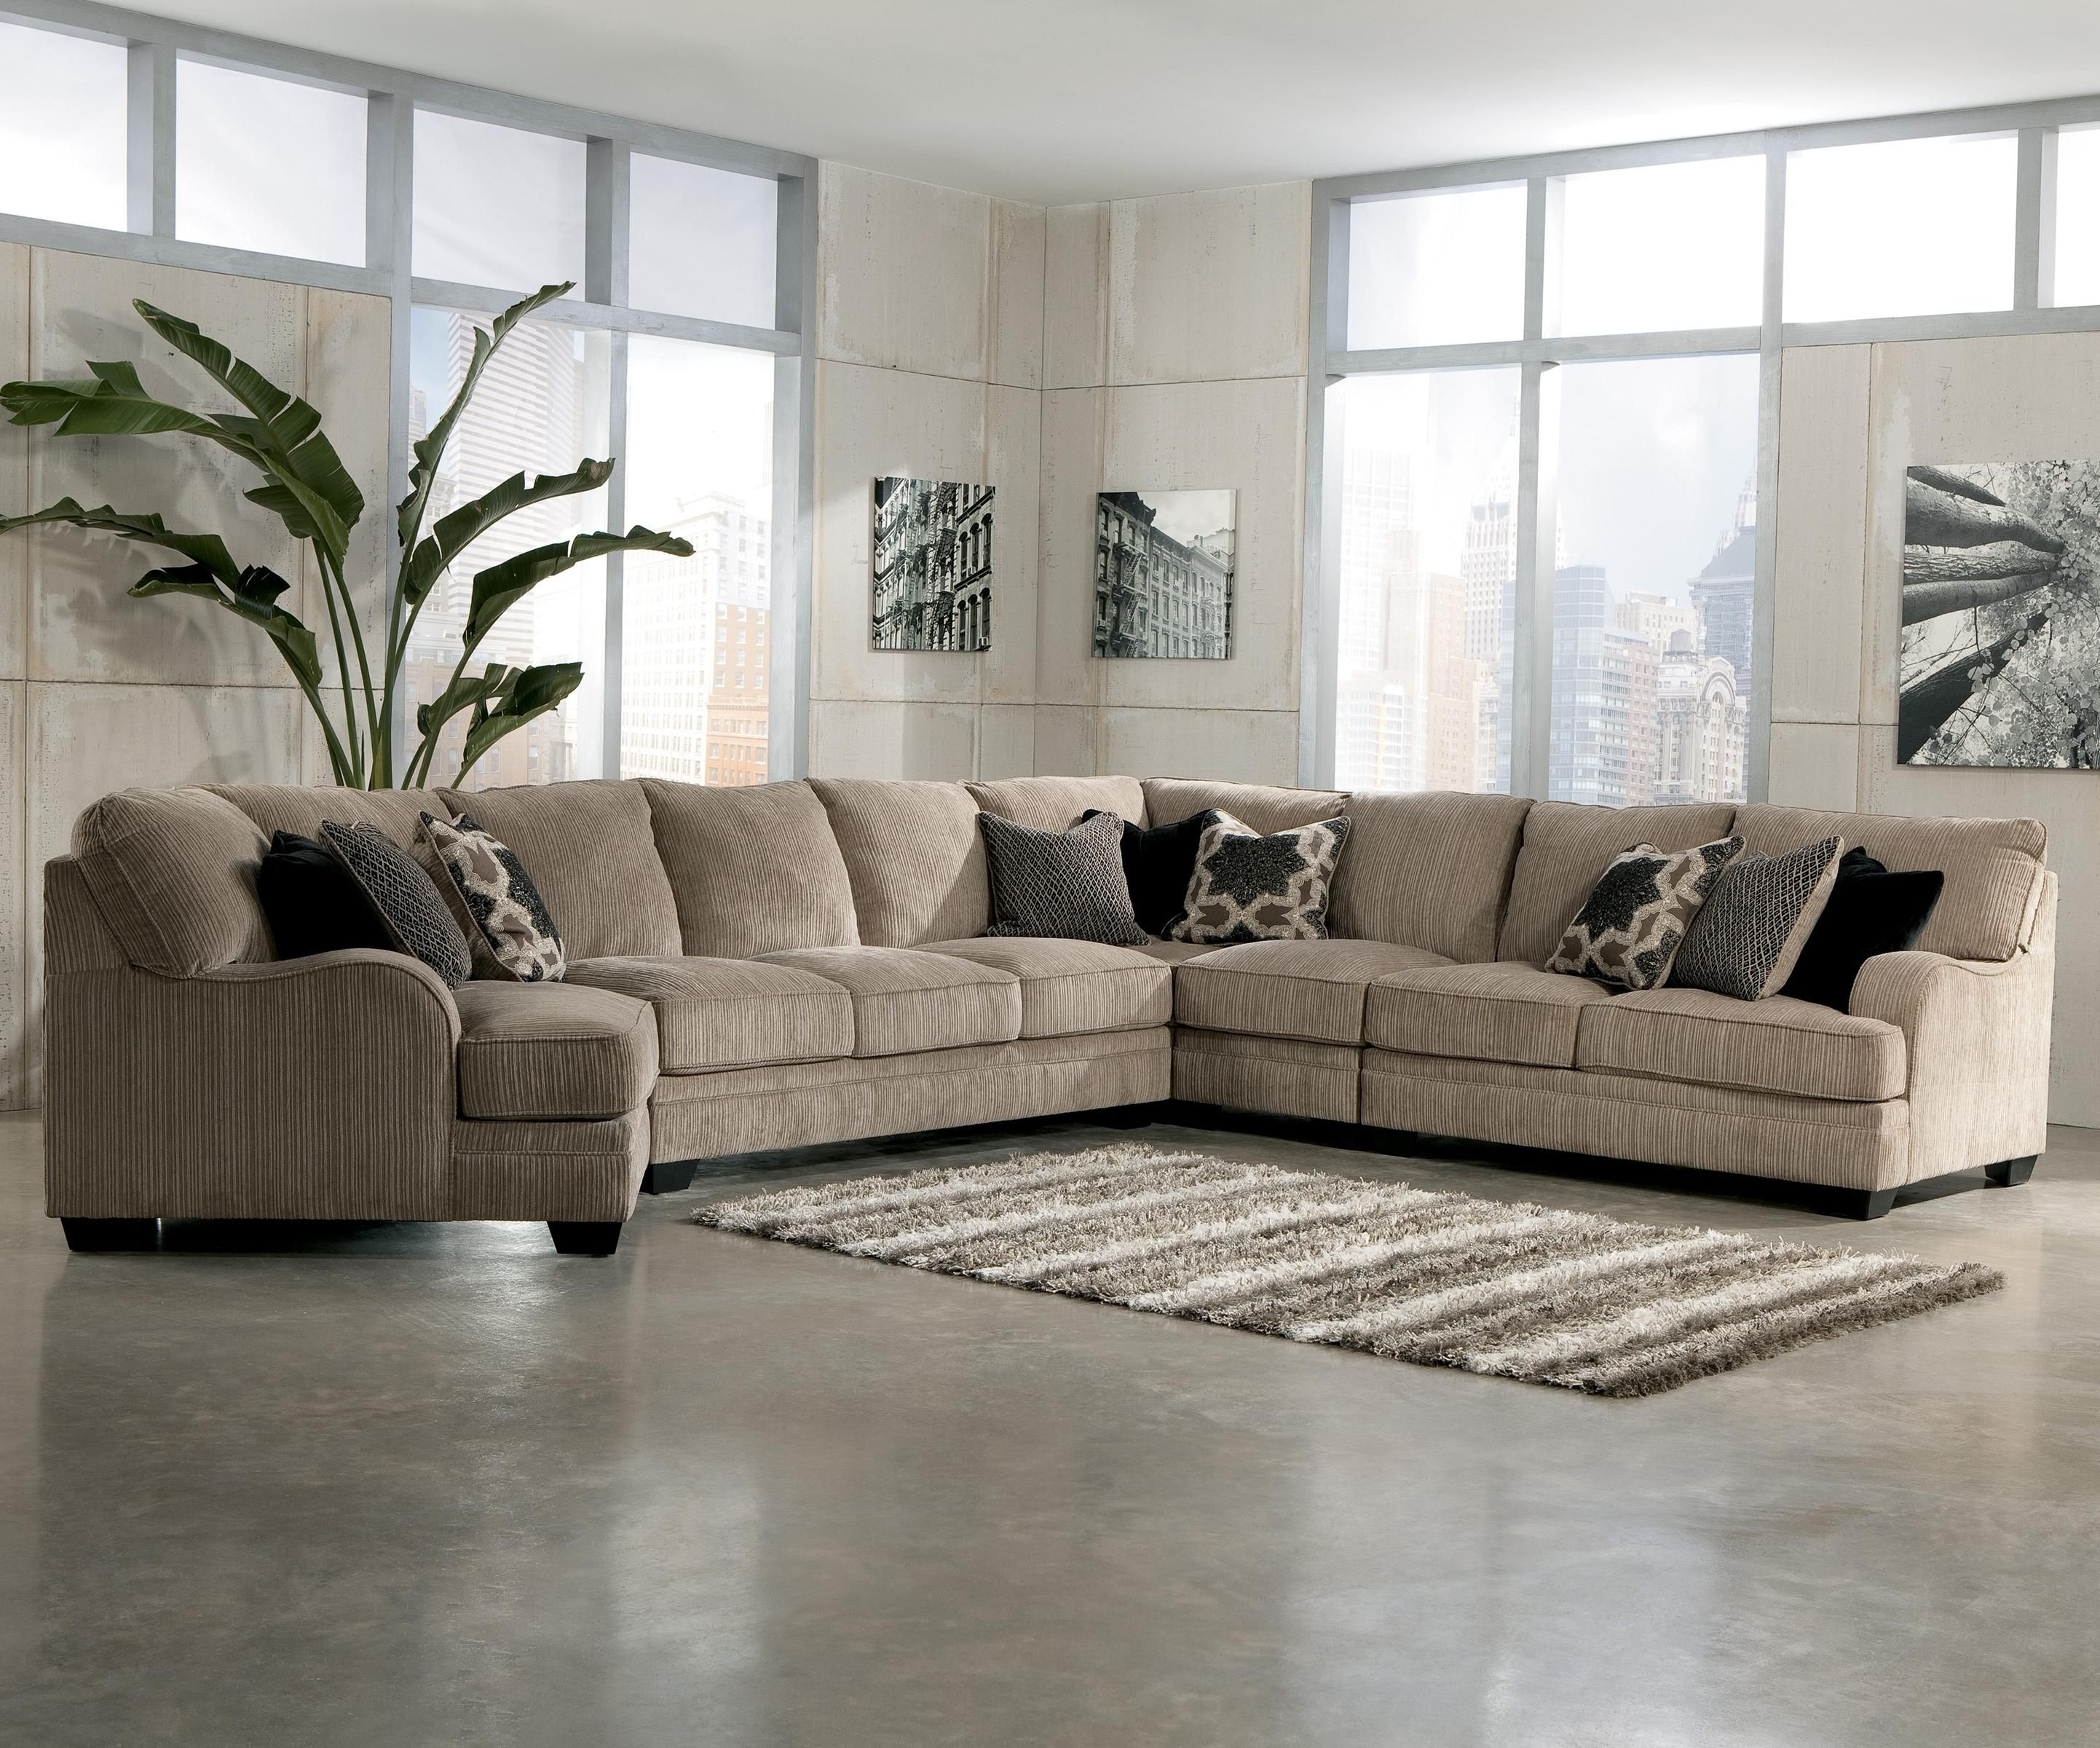 Katisha Platinum 5 Piece Sectional Sofa with Left Cuddler by